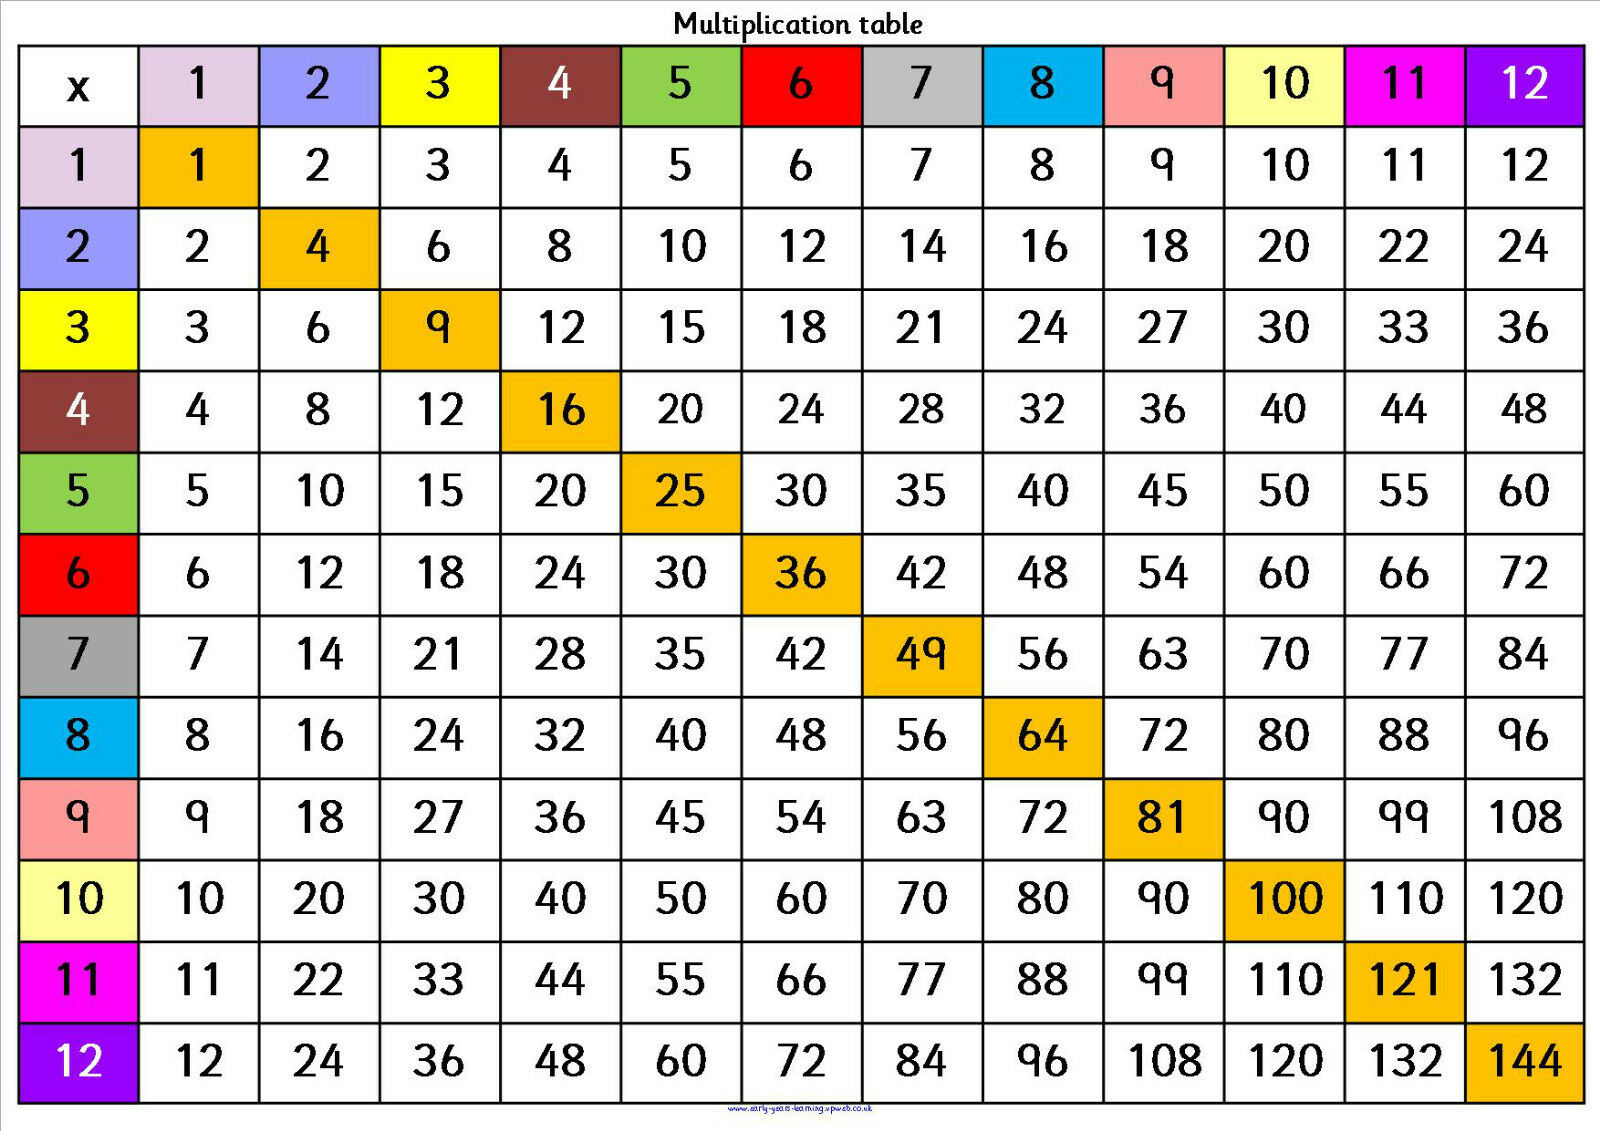 Times Tables, A4 poster full colour. All should know by 11yrs, KS 1 - 5 learning